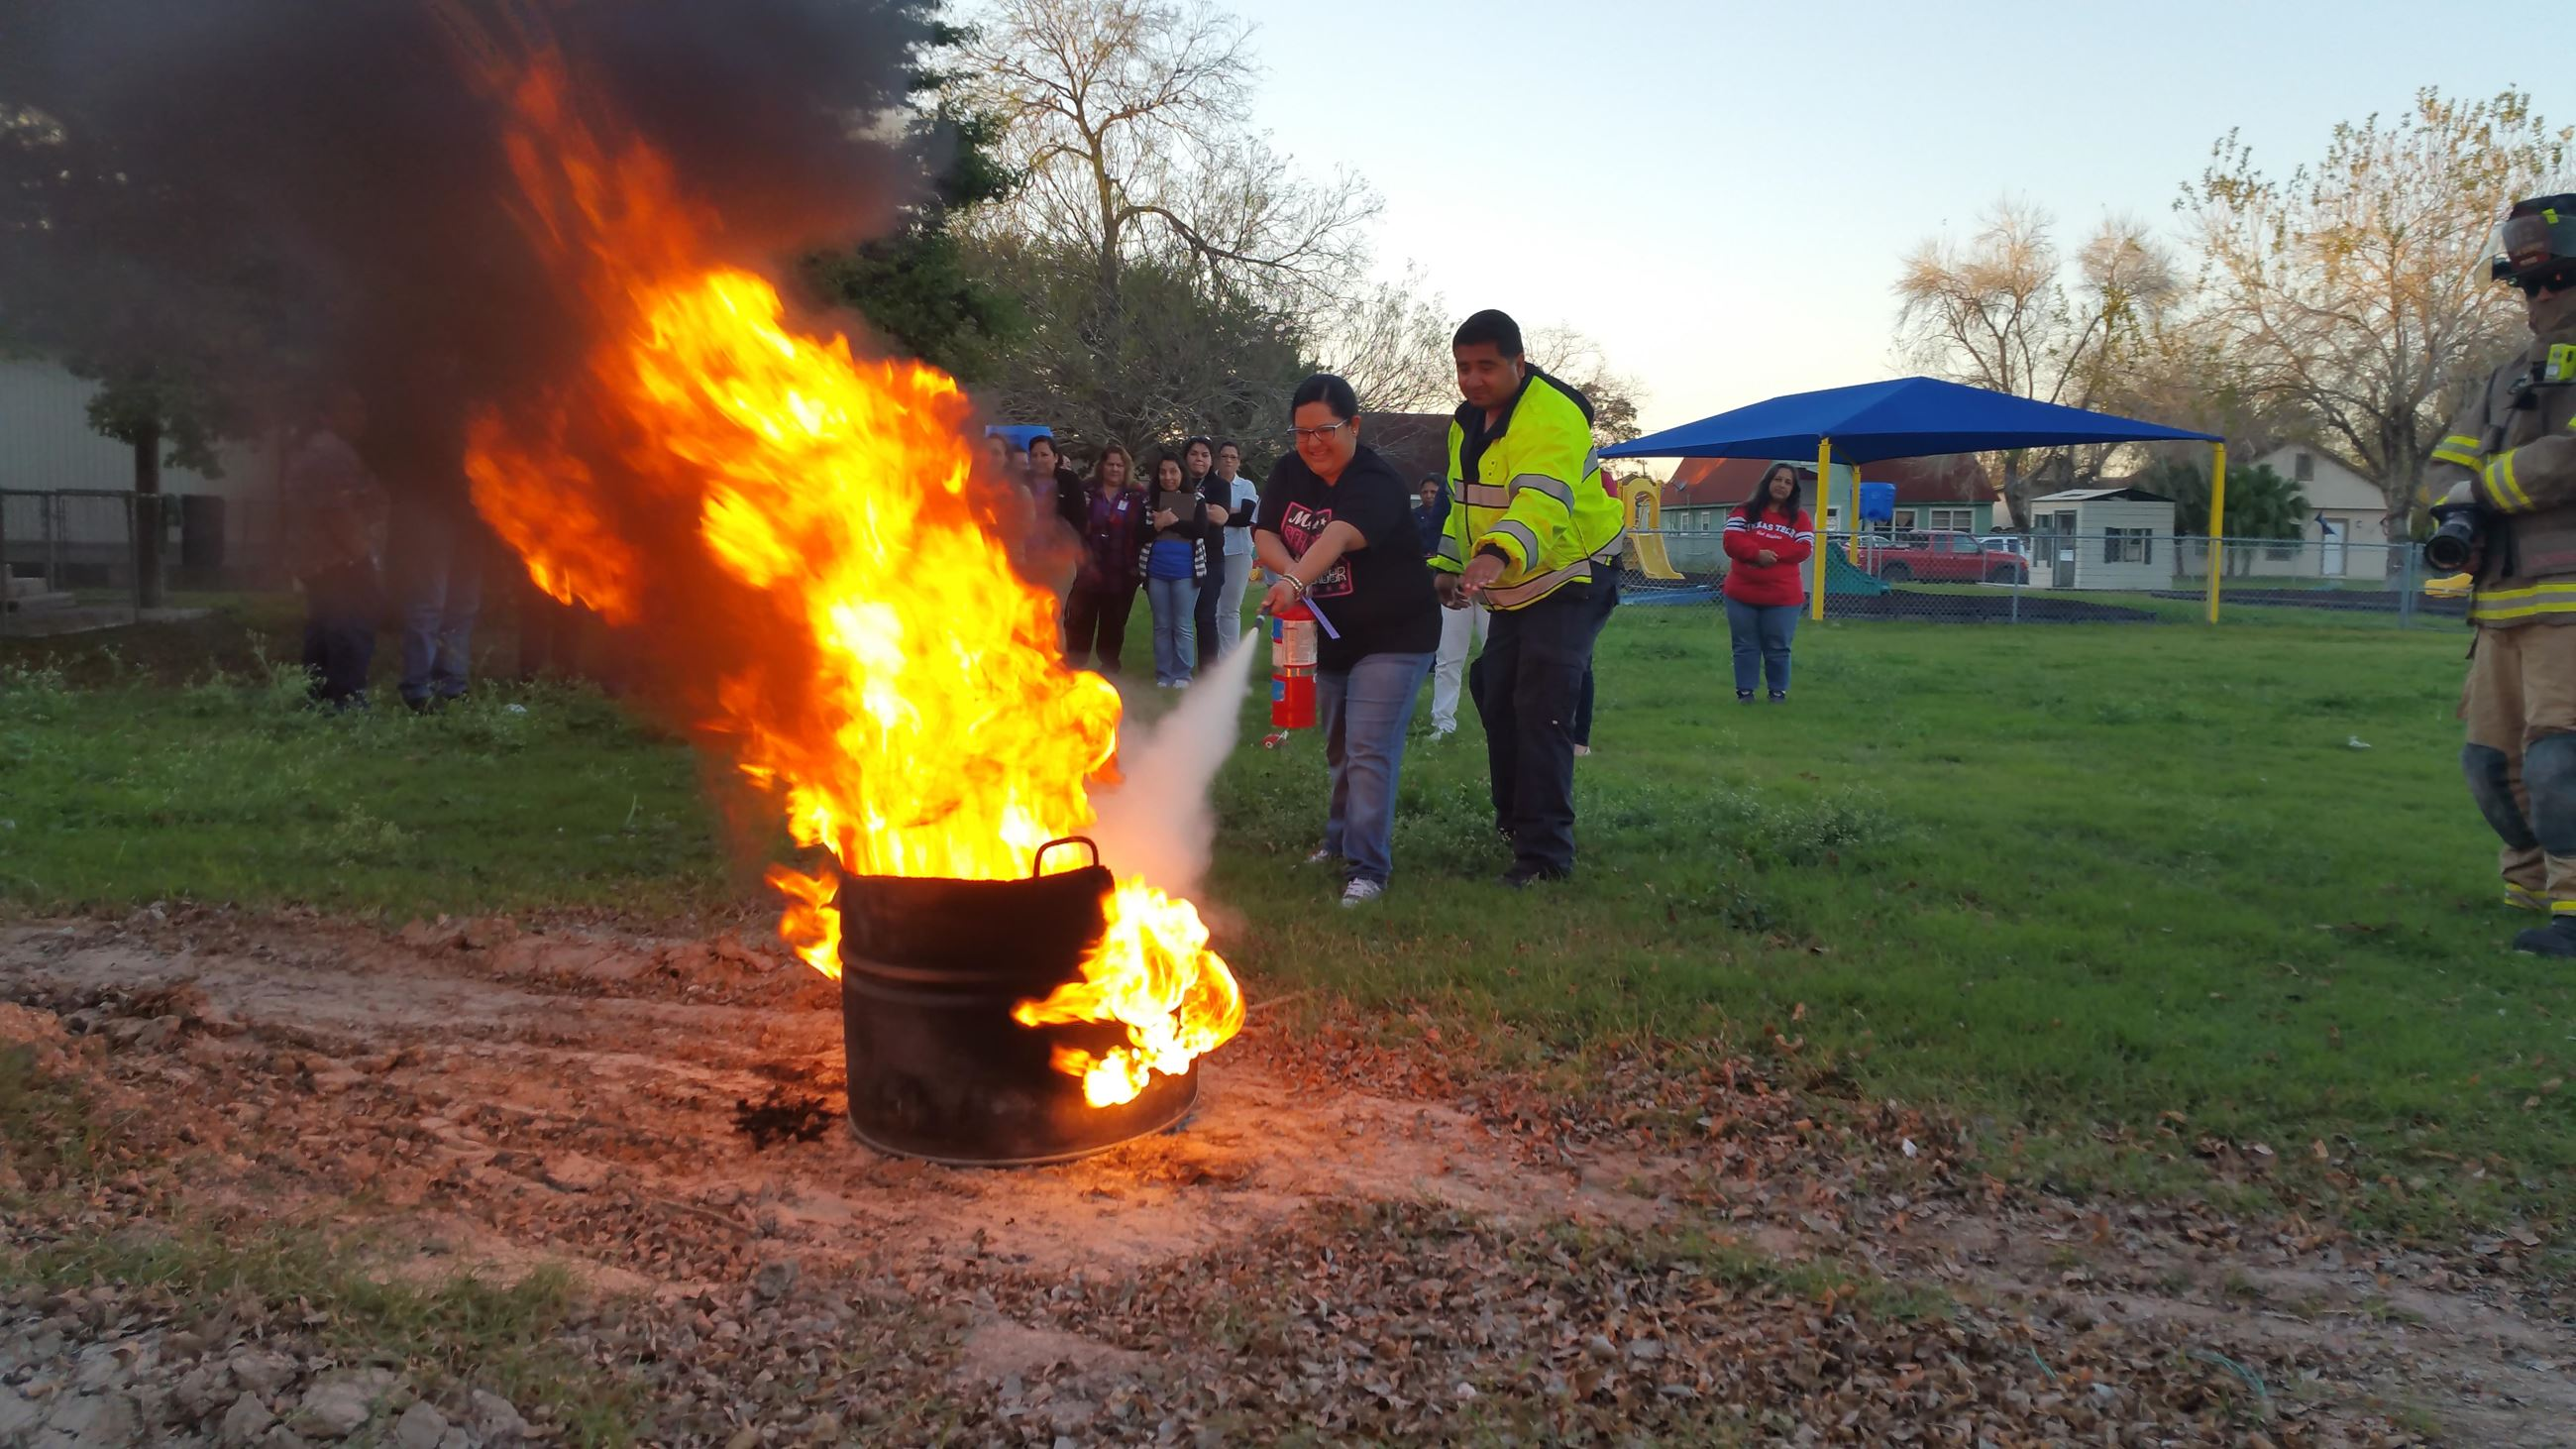 People practice using a fire extinguisher